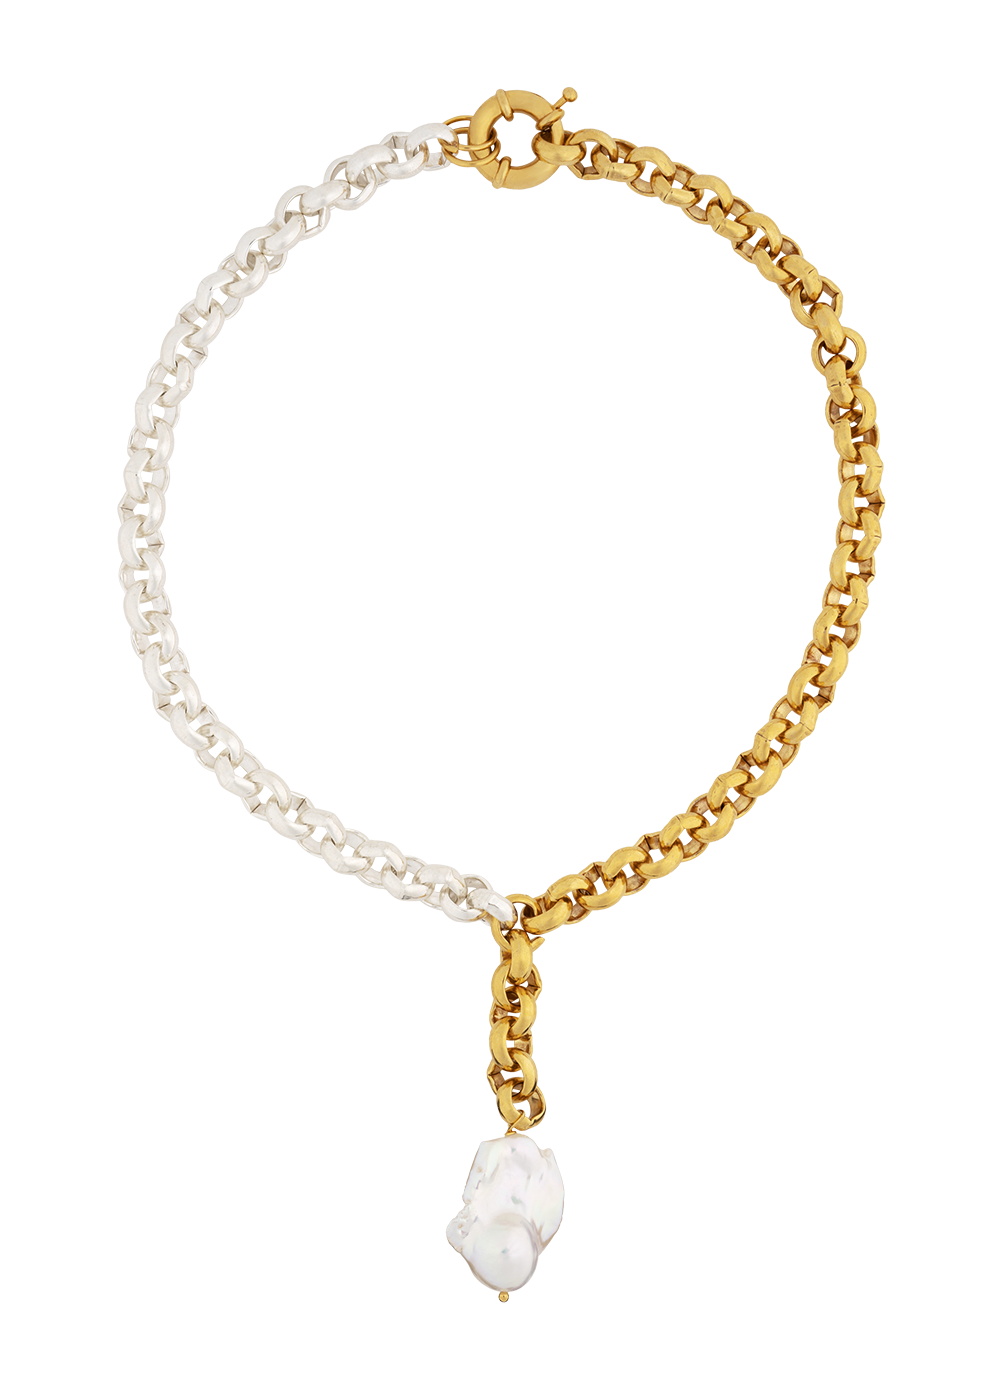 Matera necklace by Timeless Pearly